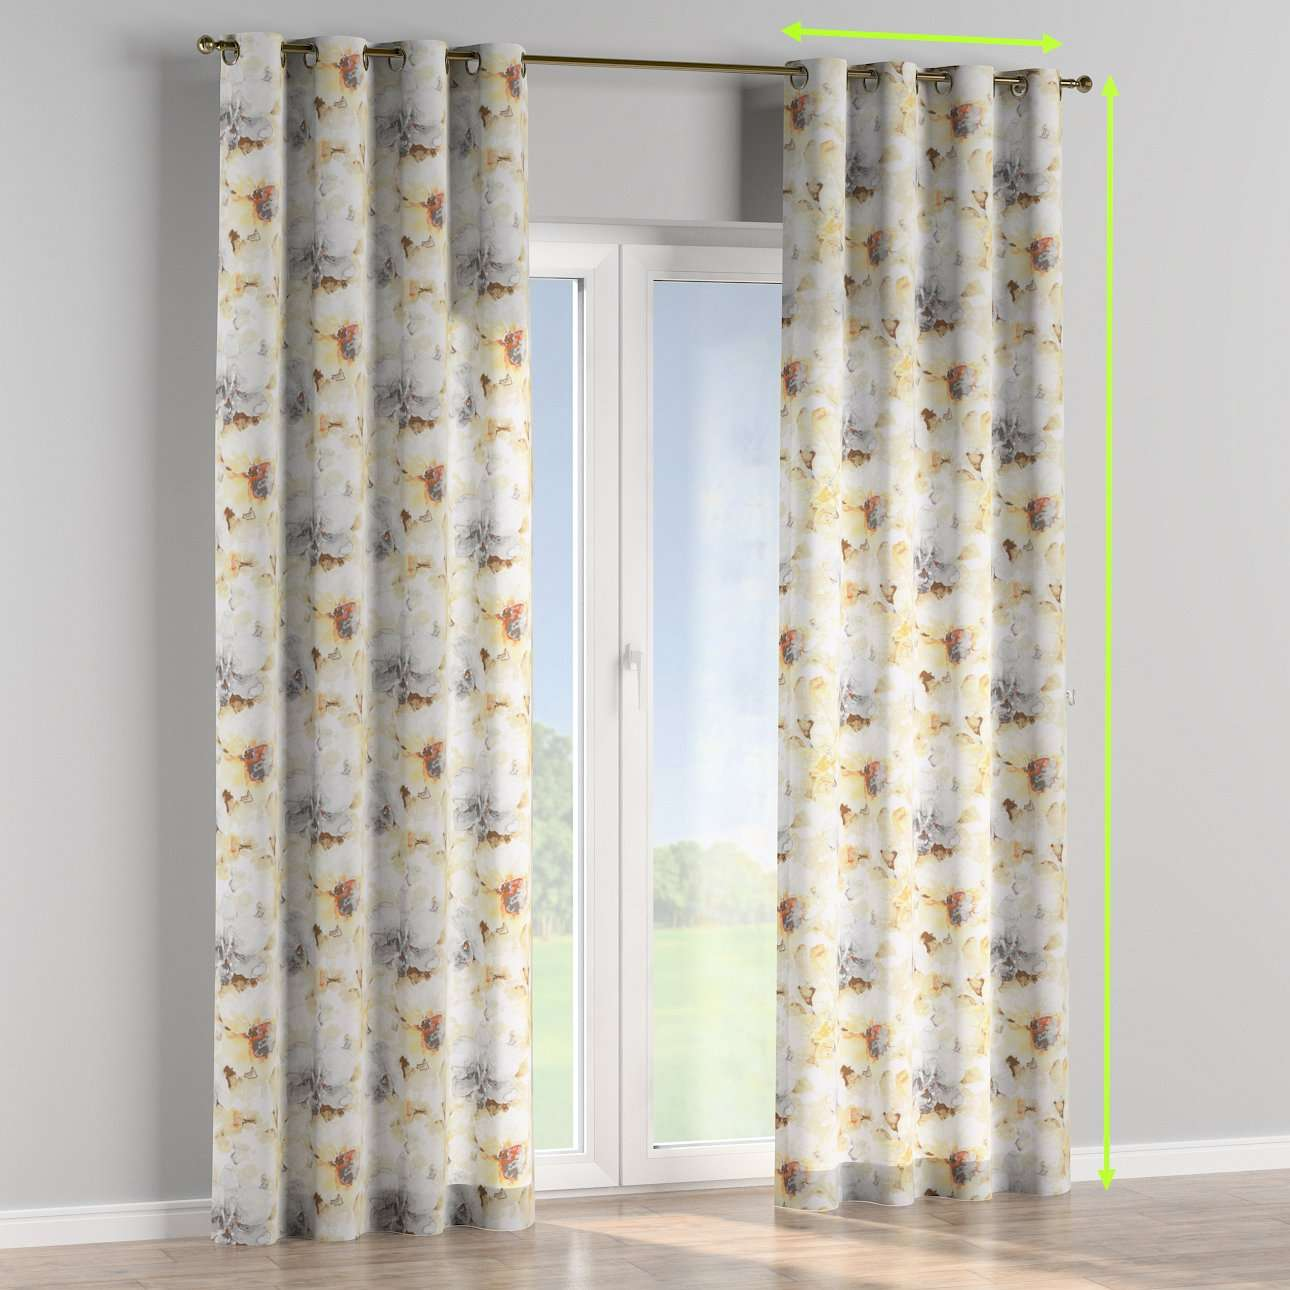 Eyelet lined curtains in collection Acapulco, fabric: 141-33